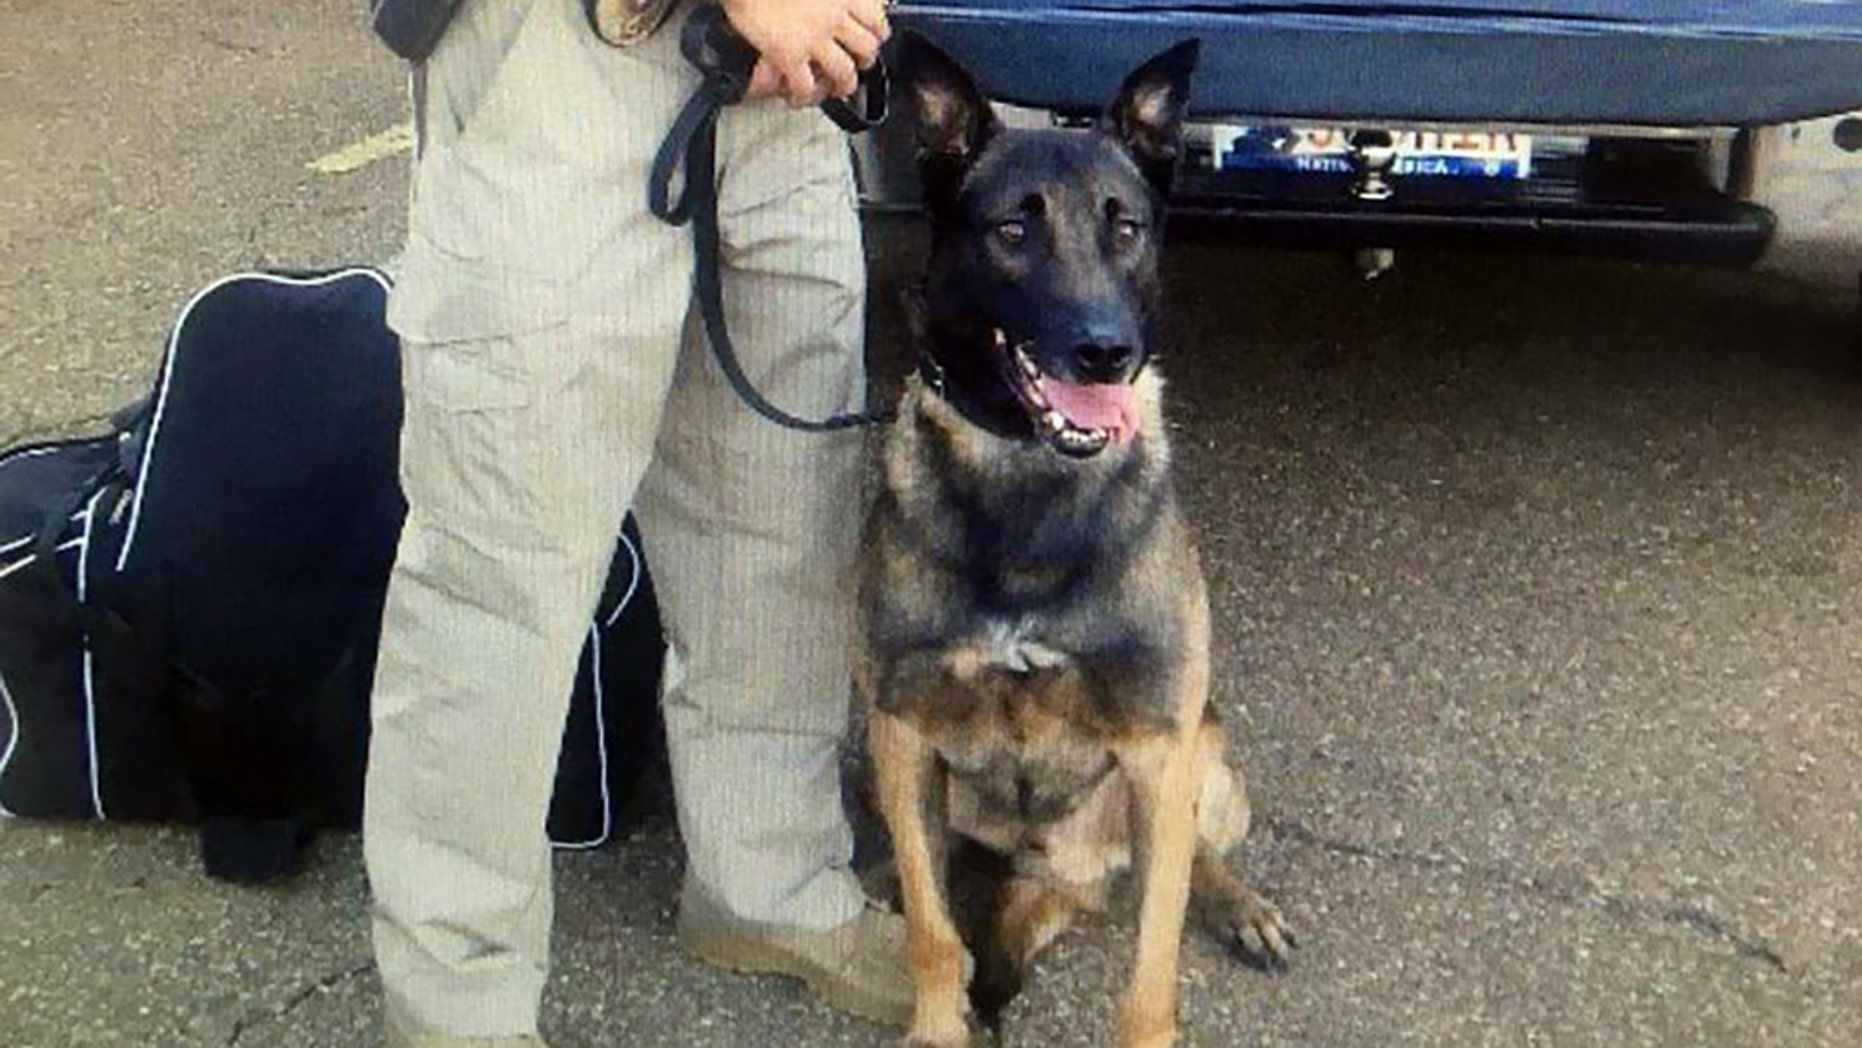 Dex, a K-9 officer with the Hinds County Sheriff's Department, died after suffering a heat stroke.